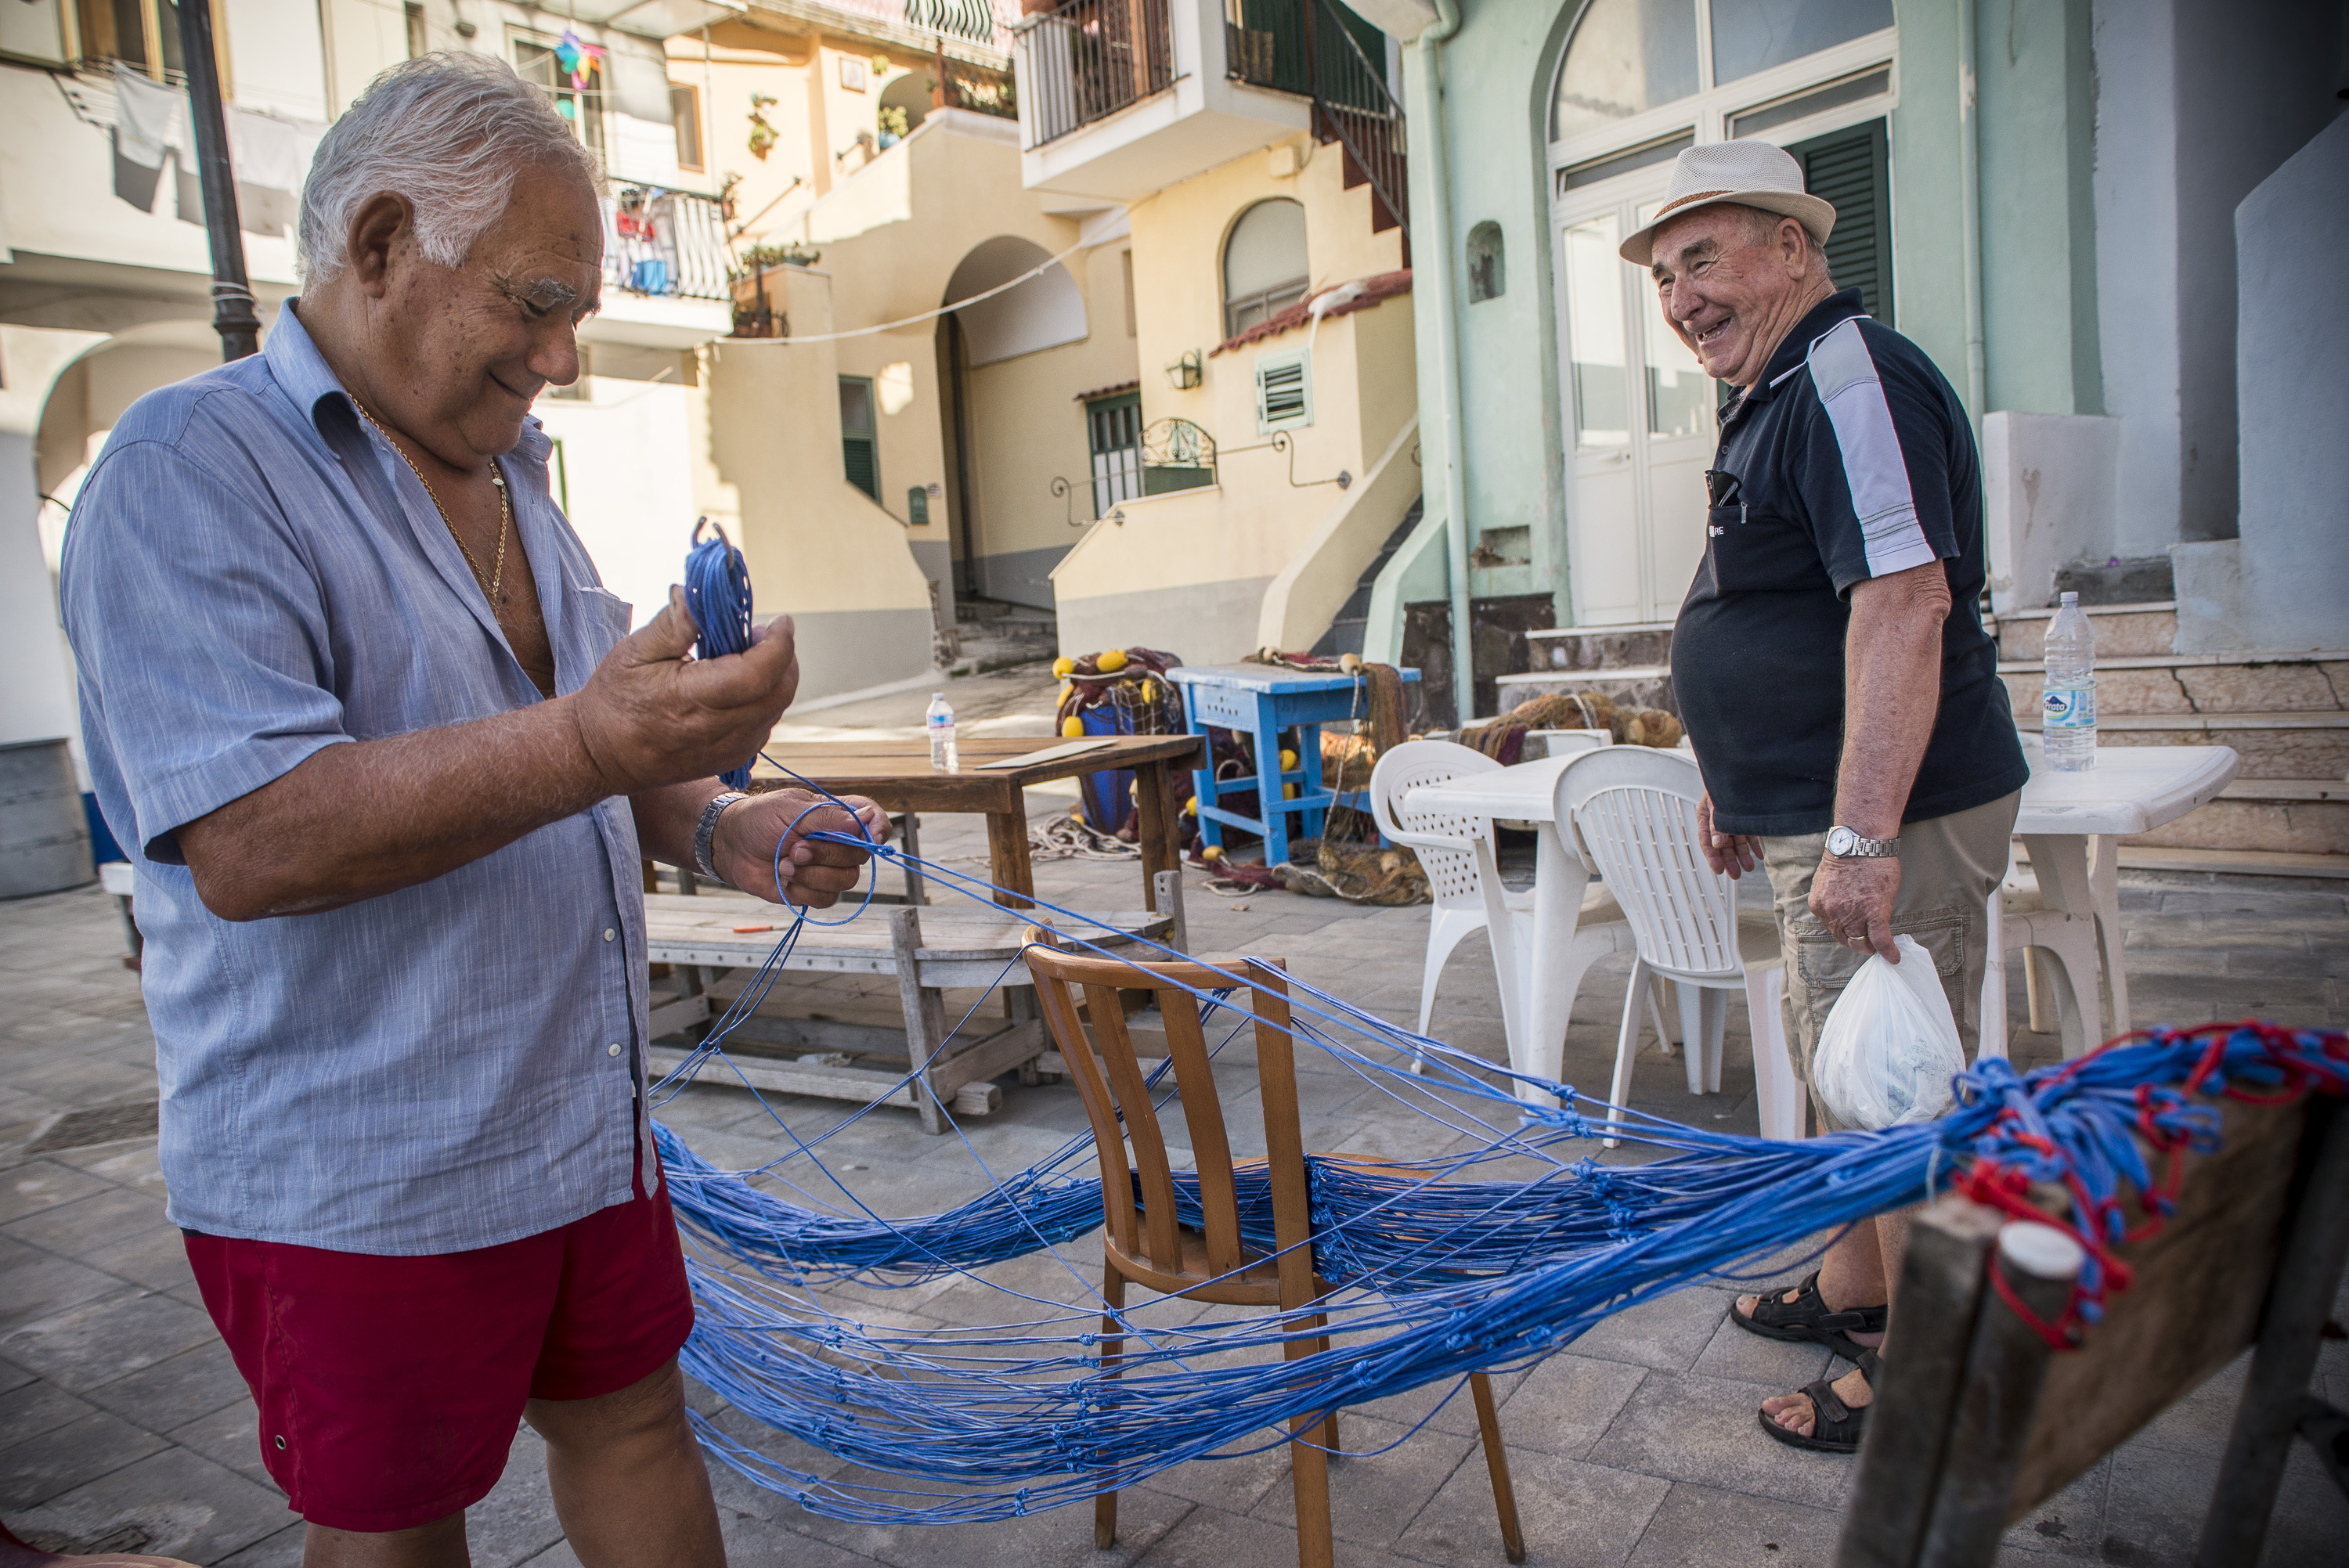 Old retired fisherman repairing fishing nets in Procida, Italy